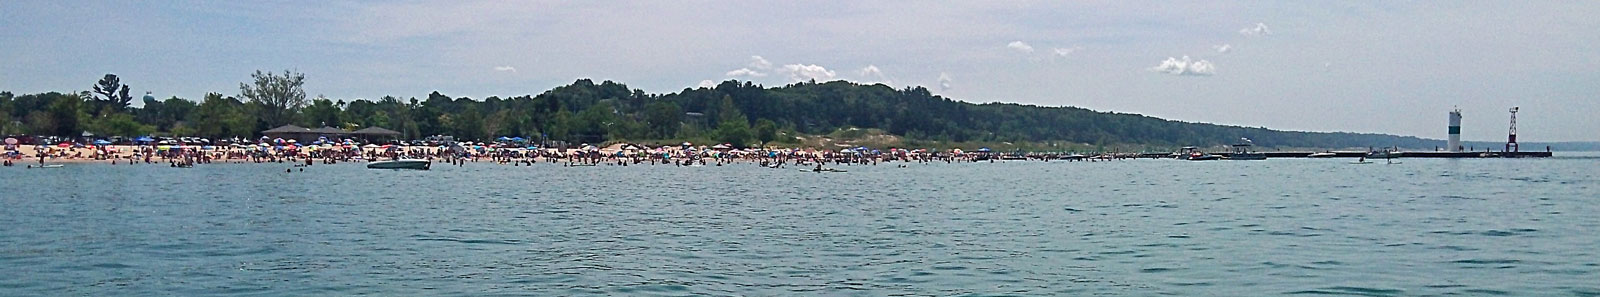 23-pentwater-beach-water-panoramic